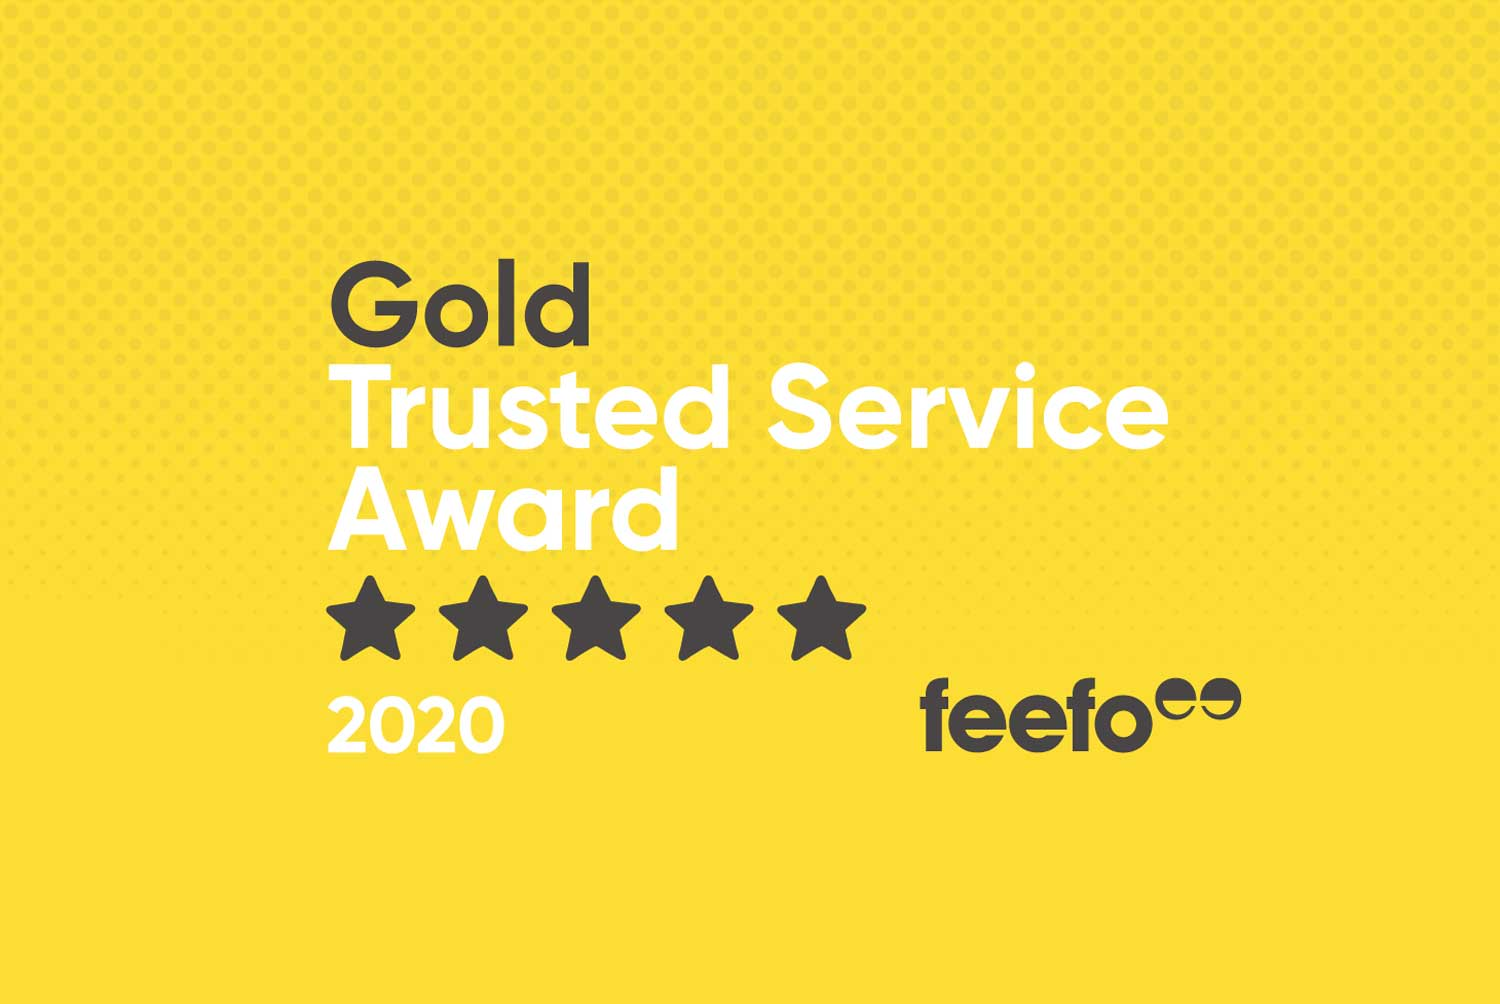 totality services make it two Feefo Gold Trusted Service Awards in a row for customer service